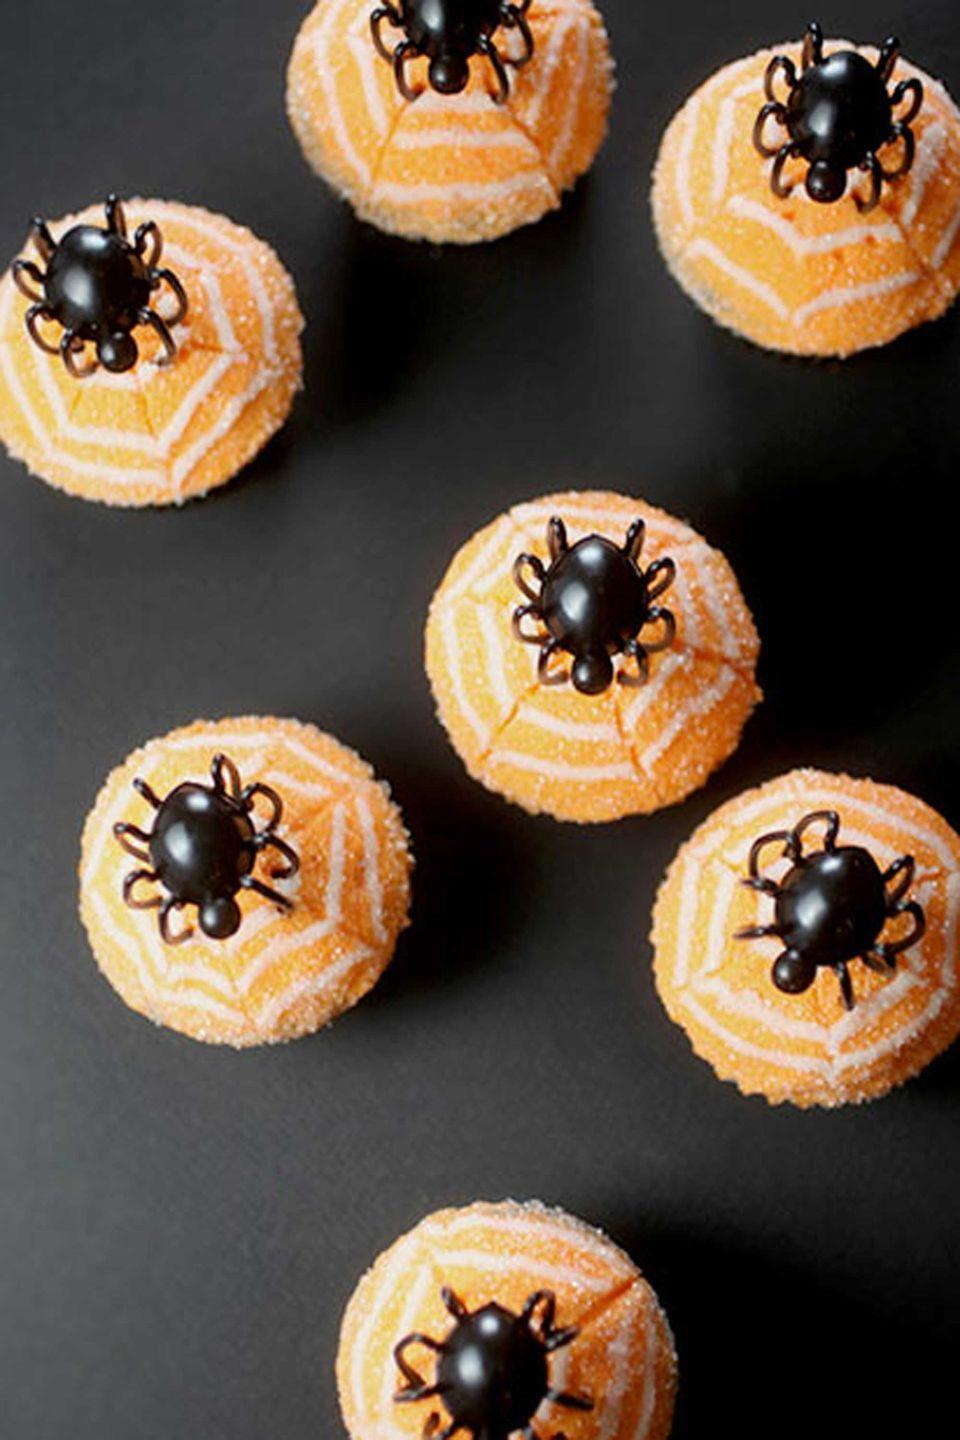 """<p>Just frost basic chocolate cupcakes with orange buttercream, then pipe on three circles of white frosting before dragging a toothpick through them to create a """"web."""" A plastic spider tops off this creepy treat!</p><p><strong>Get the recipe at </strong><strong><a href=""""http://www.bakerella.com/quick-and-easy-creepy-cupcakes/#comment-403156"""" rel=""""nofollow noopener"""" target=""""_blank"""" data-ylk=""""slk:Bakerella"""" class=""""link rapid-noclick-resp"""">Bakerella</a>.</strong></p><p><strong><a class=""""link rapid-noclick-resp"""" href=""""https://www.amazon.com/Wilton-Non-Stick-Muffin-Cupcake-Baking/dp/B00KIFBI1C/?tag=syn-yahoo-20&ascsubtag=%5Bartid%7C10050.g.1366%5Bsrc%7Cyahoo-us"""" rel=""""nofollow noopener"""" target=""""_blank"""" data-ylk=""""slk:SHOP CUPCAKE TINS"""">SHOP CUPCAKE TINS</a></strong></p>"""